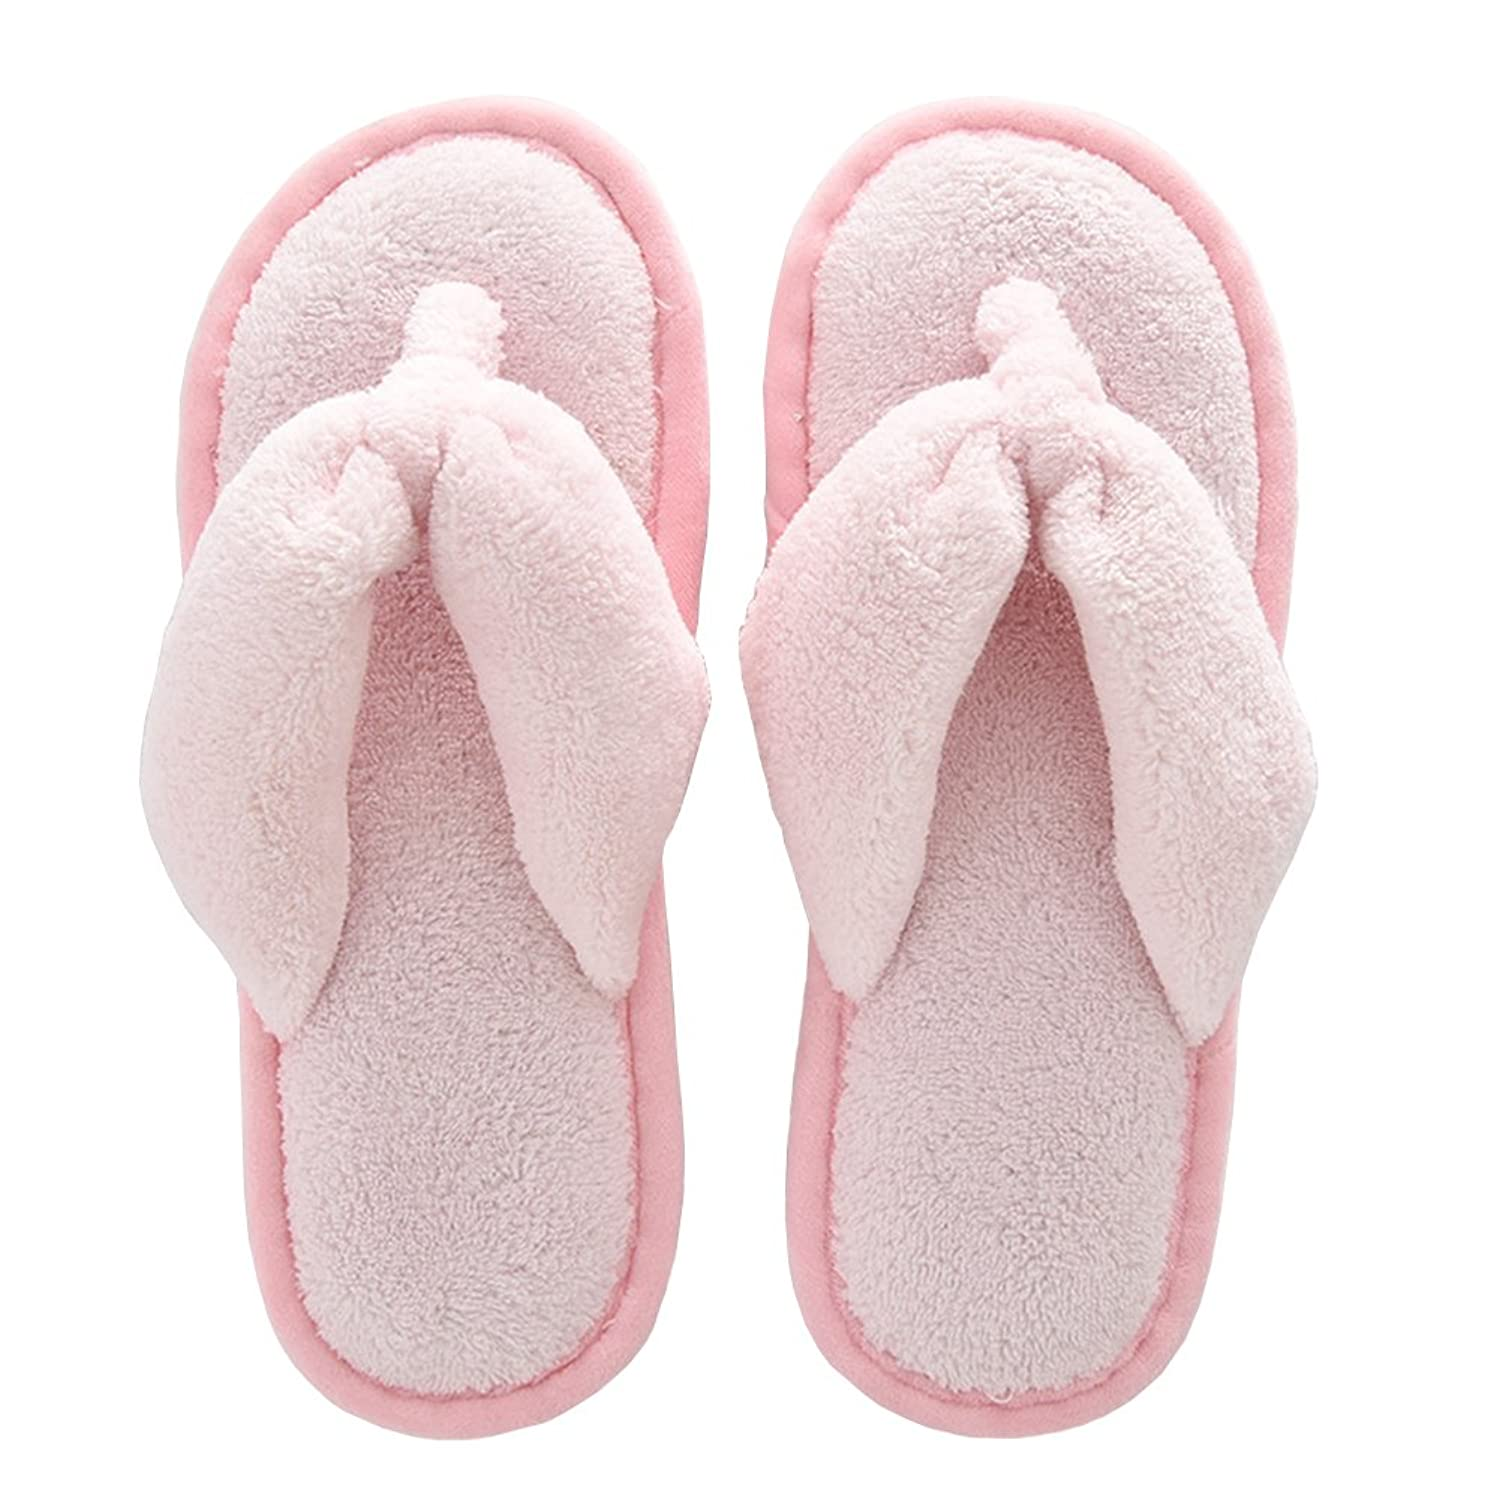 82d5bdb176def Buy spa thong slippers cheap,up to 76% Discounts